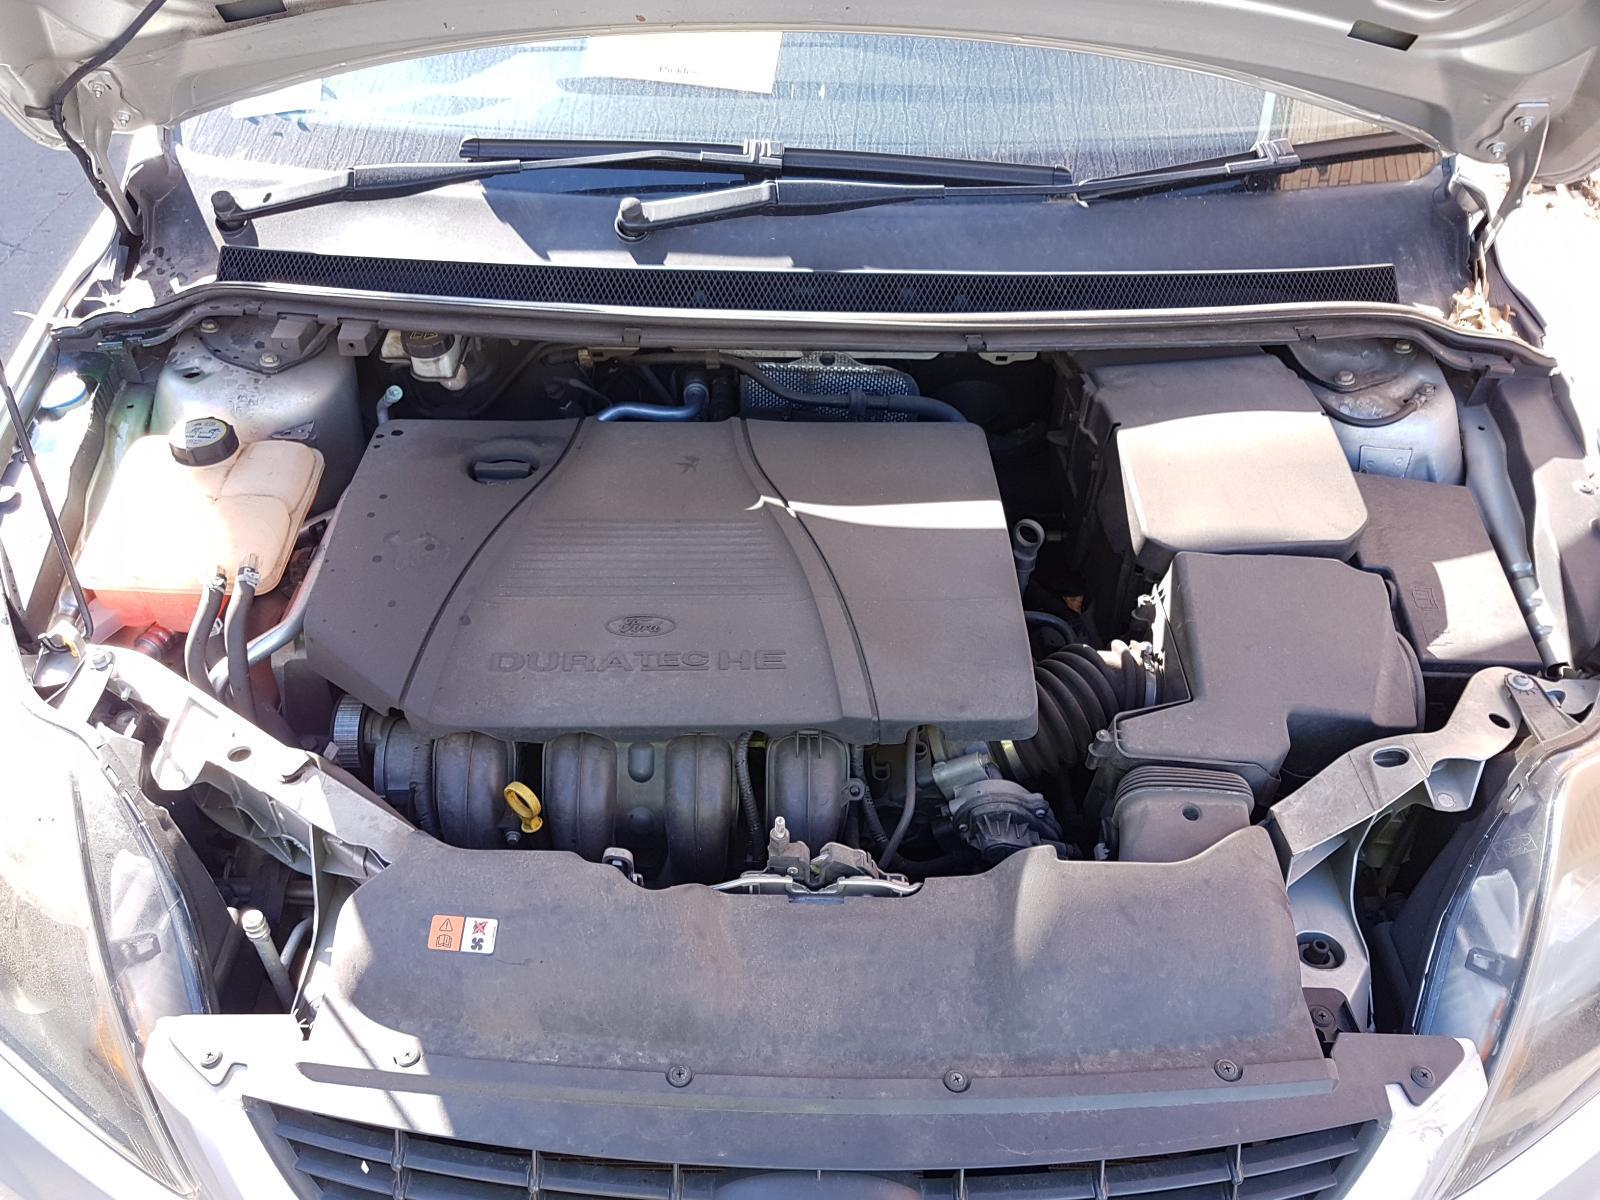 View Auto part Engine Ford Focus 2010